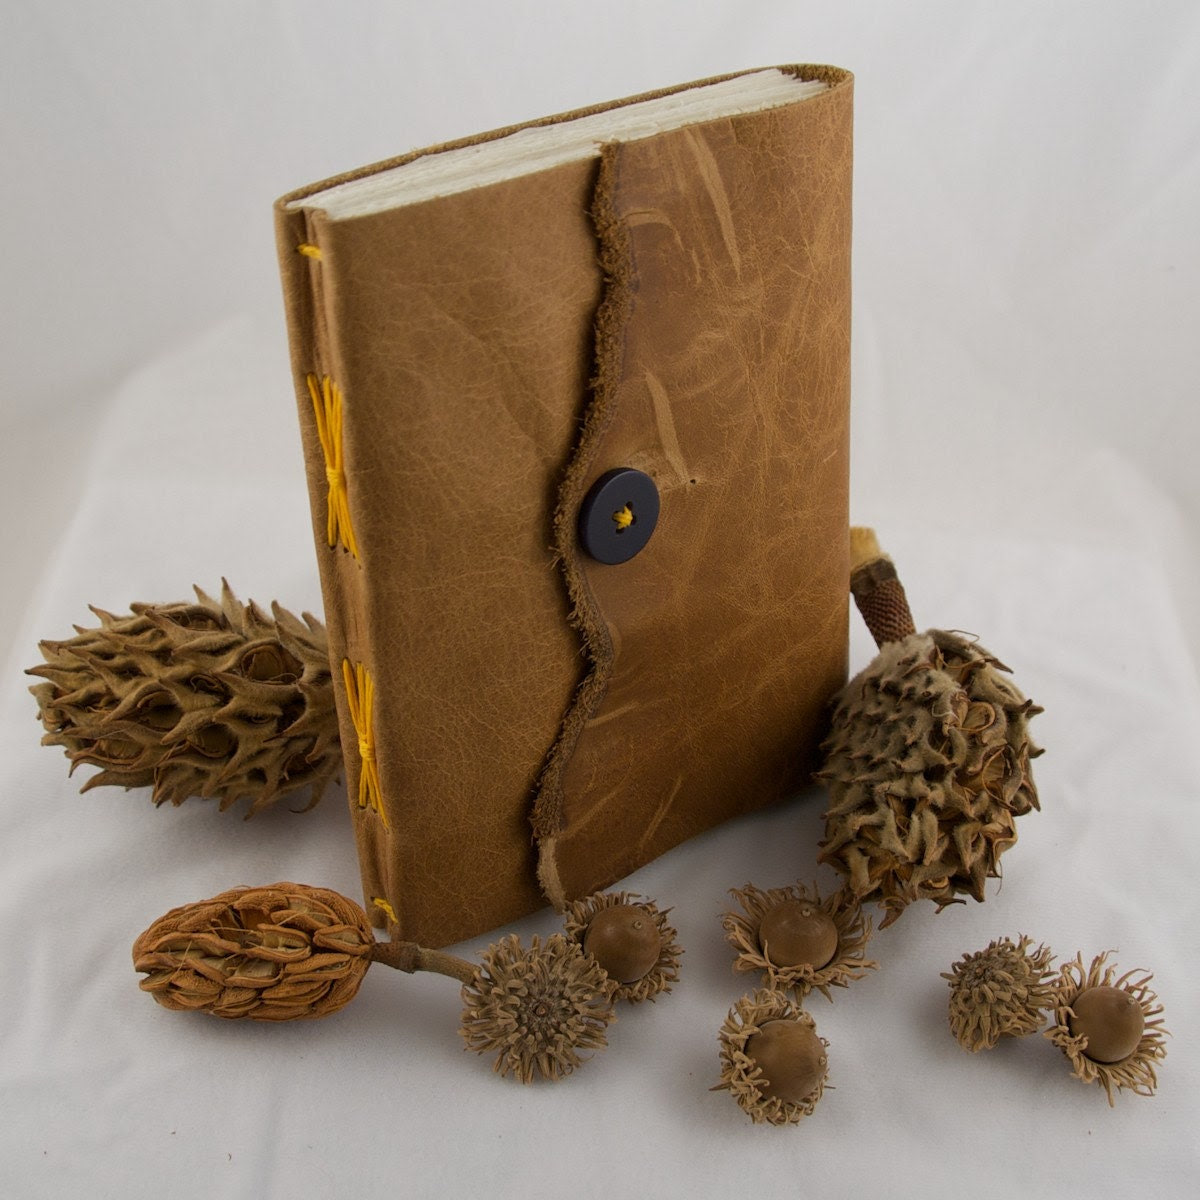 Softcover Golden Brown Leather Sketchbook or Journal with Bright Autumn Yellow Thread and Vintage Button - Edition 117